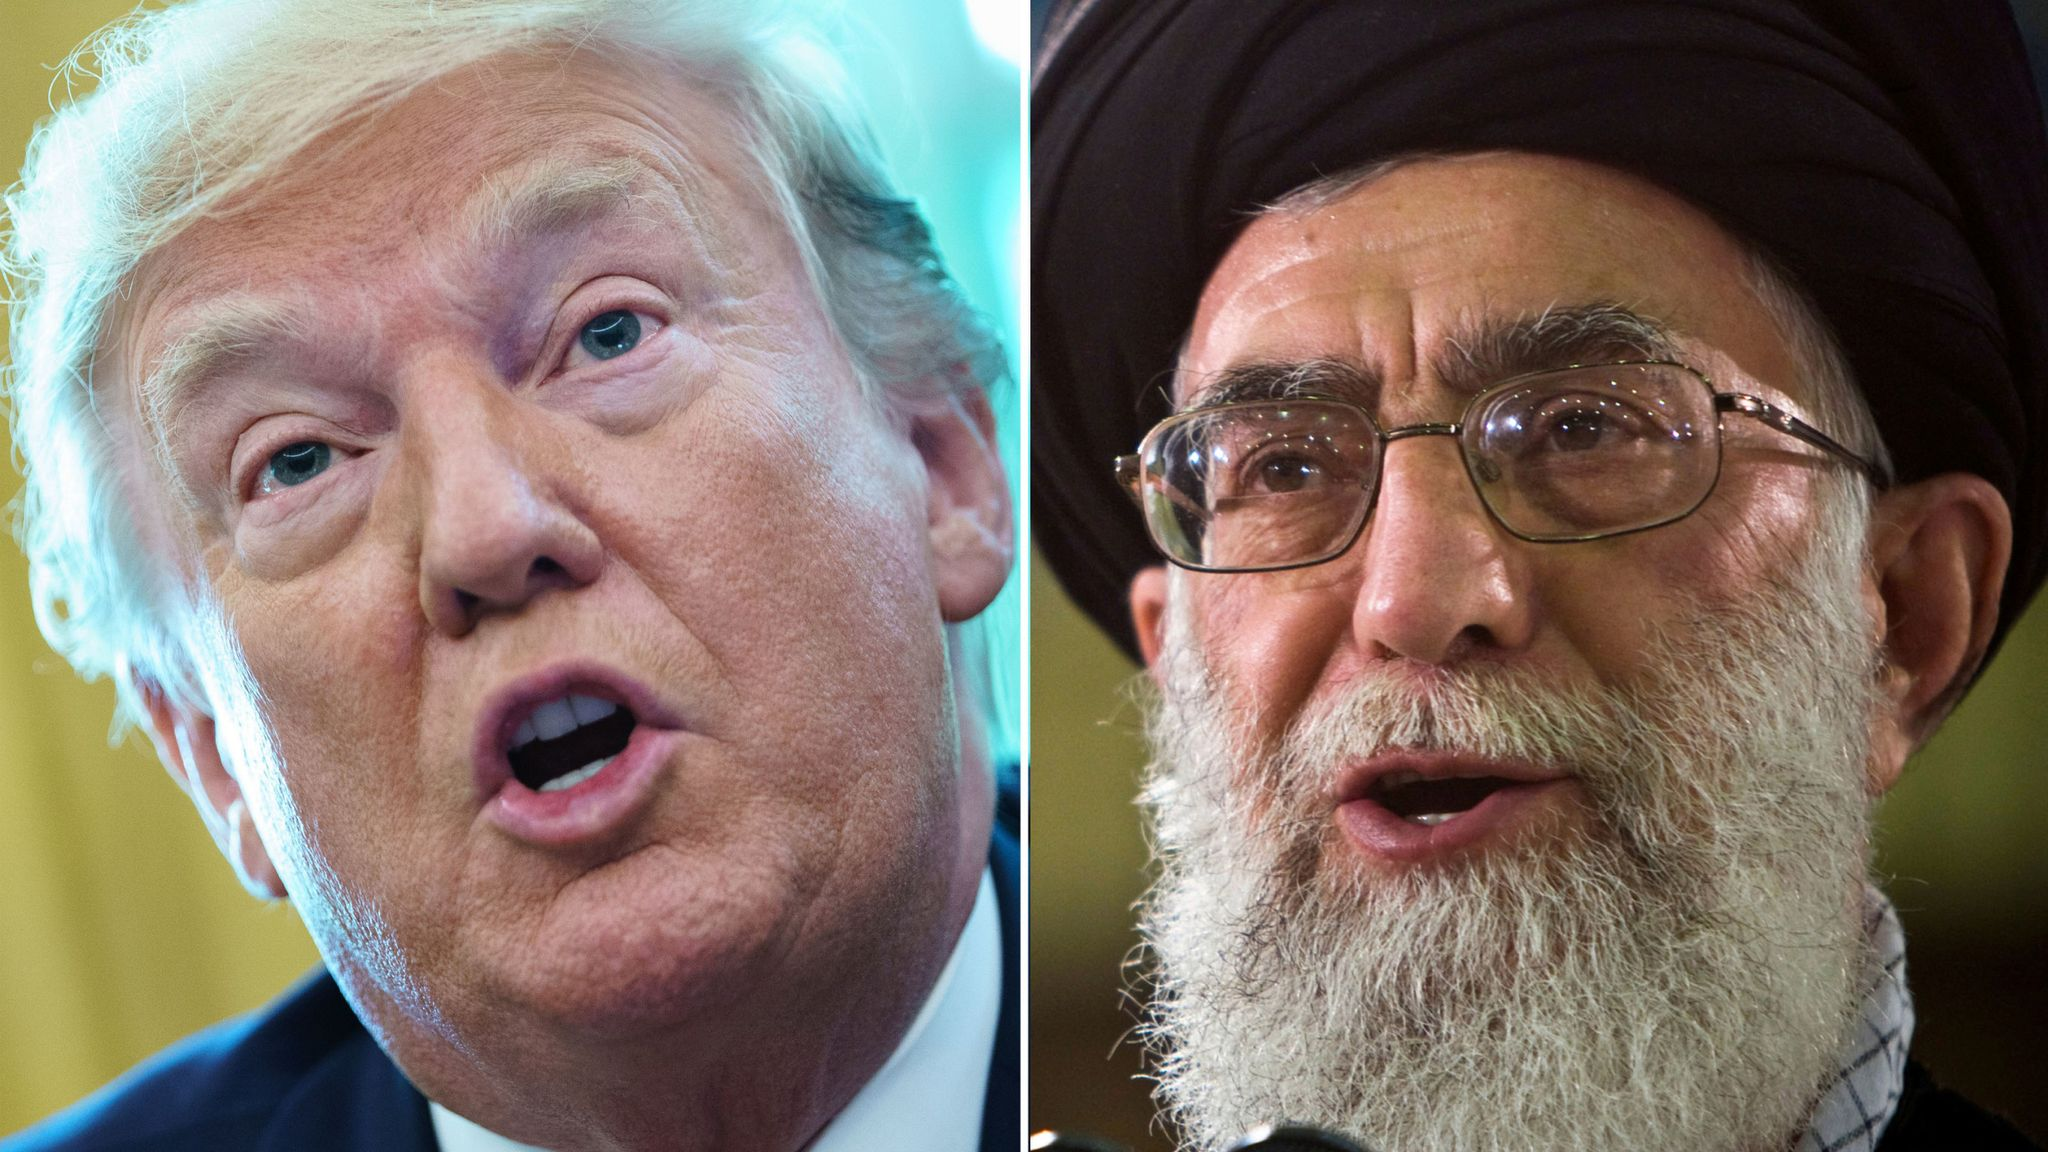 Iran's UN ambassador says talks with the US are impossible